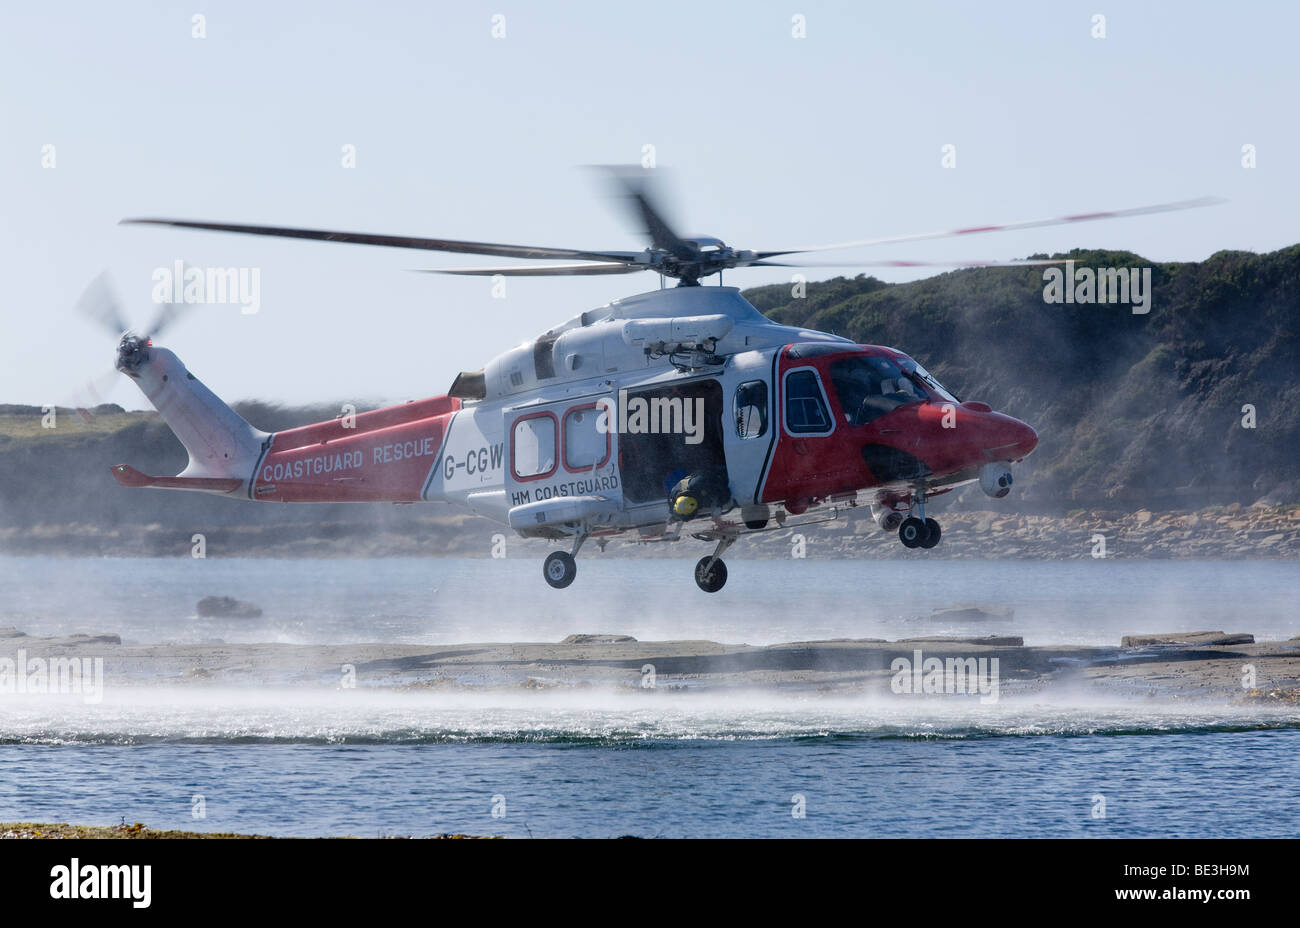 Coastguard rescue helicopter landing on rocky beach to aid an injured tourist at Kimmeridge Bay, Dorset, UK - Stock Image